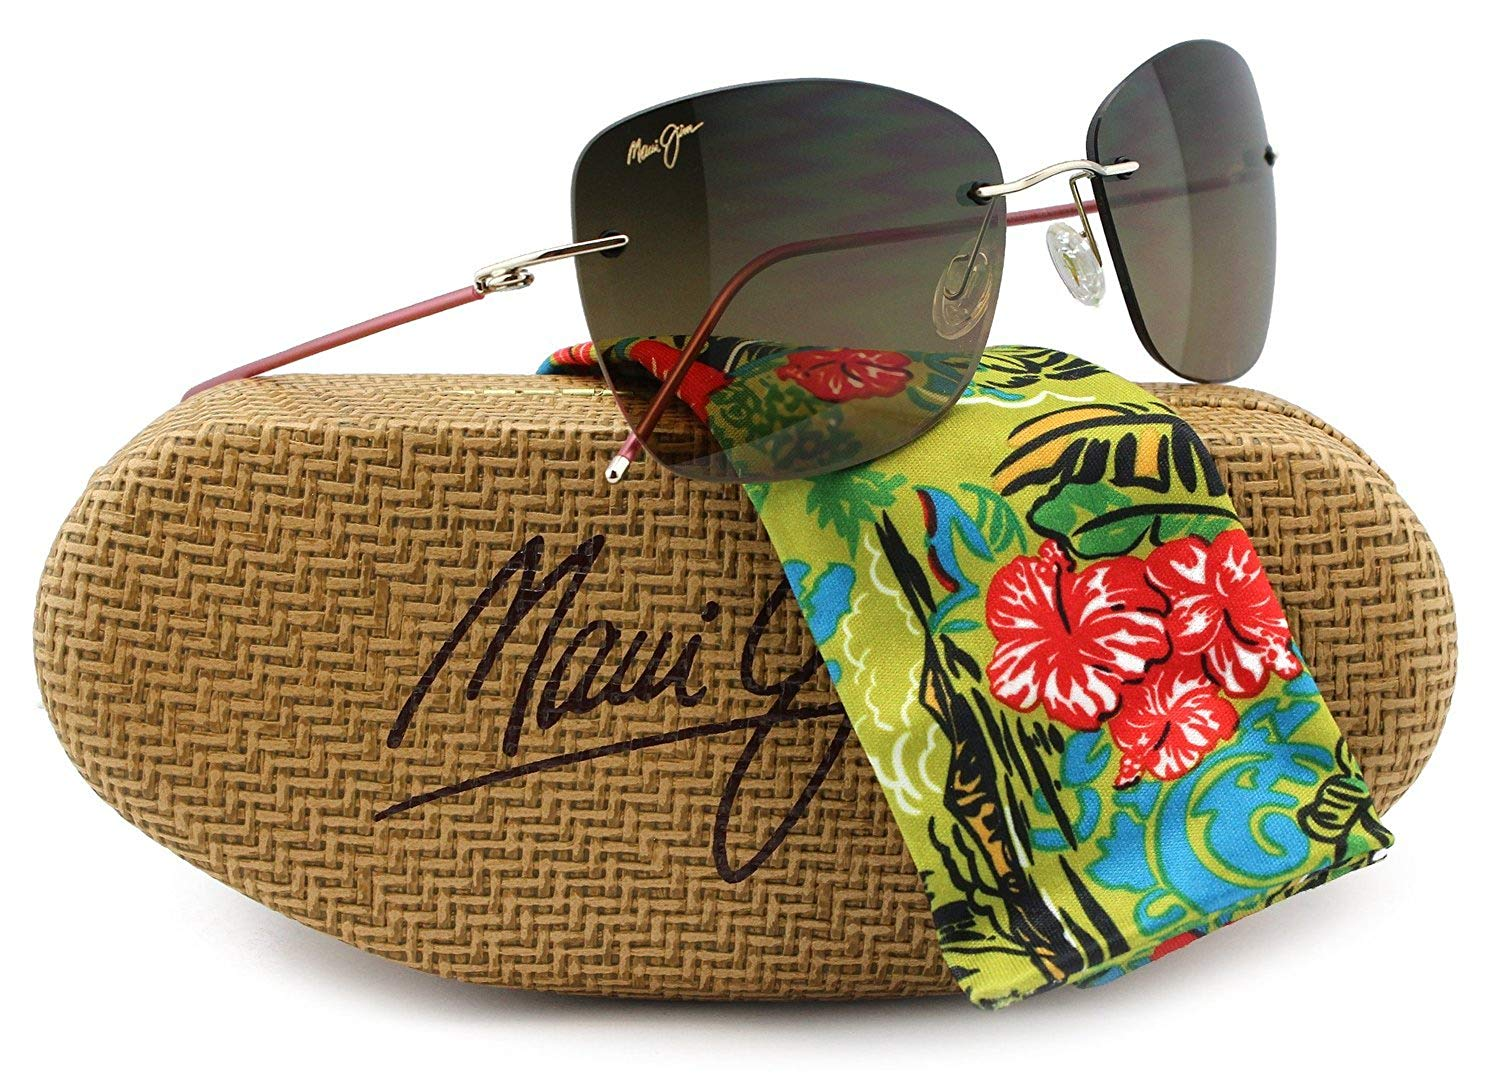 74c490c7f492 Maui Jim HS717-16 Apapane Sunglasses 16H w  HCL Bronze HS717 16 55mm  Authentic